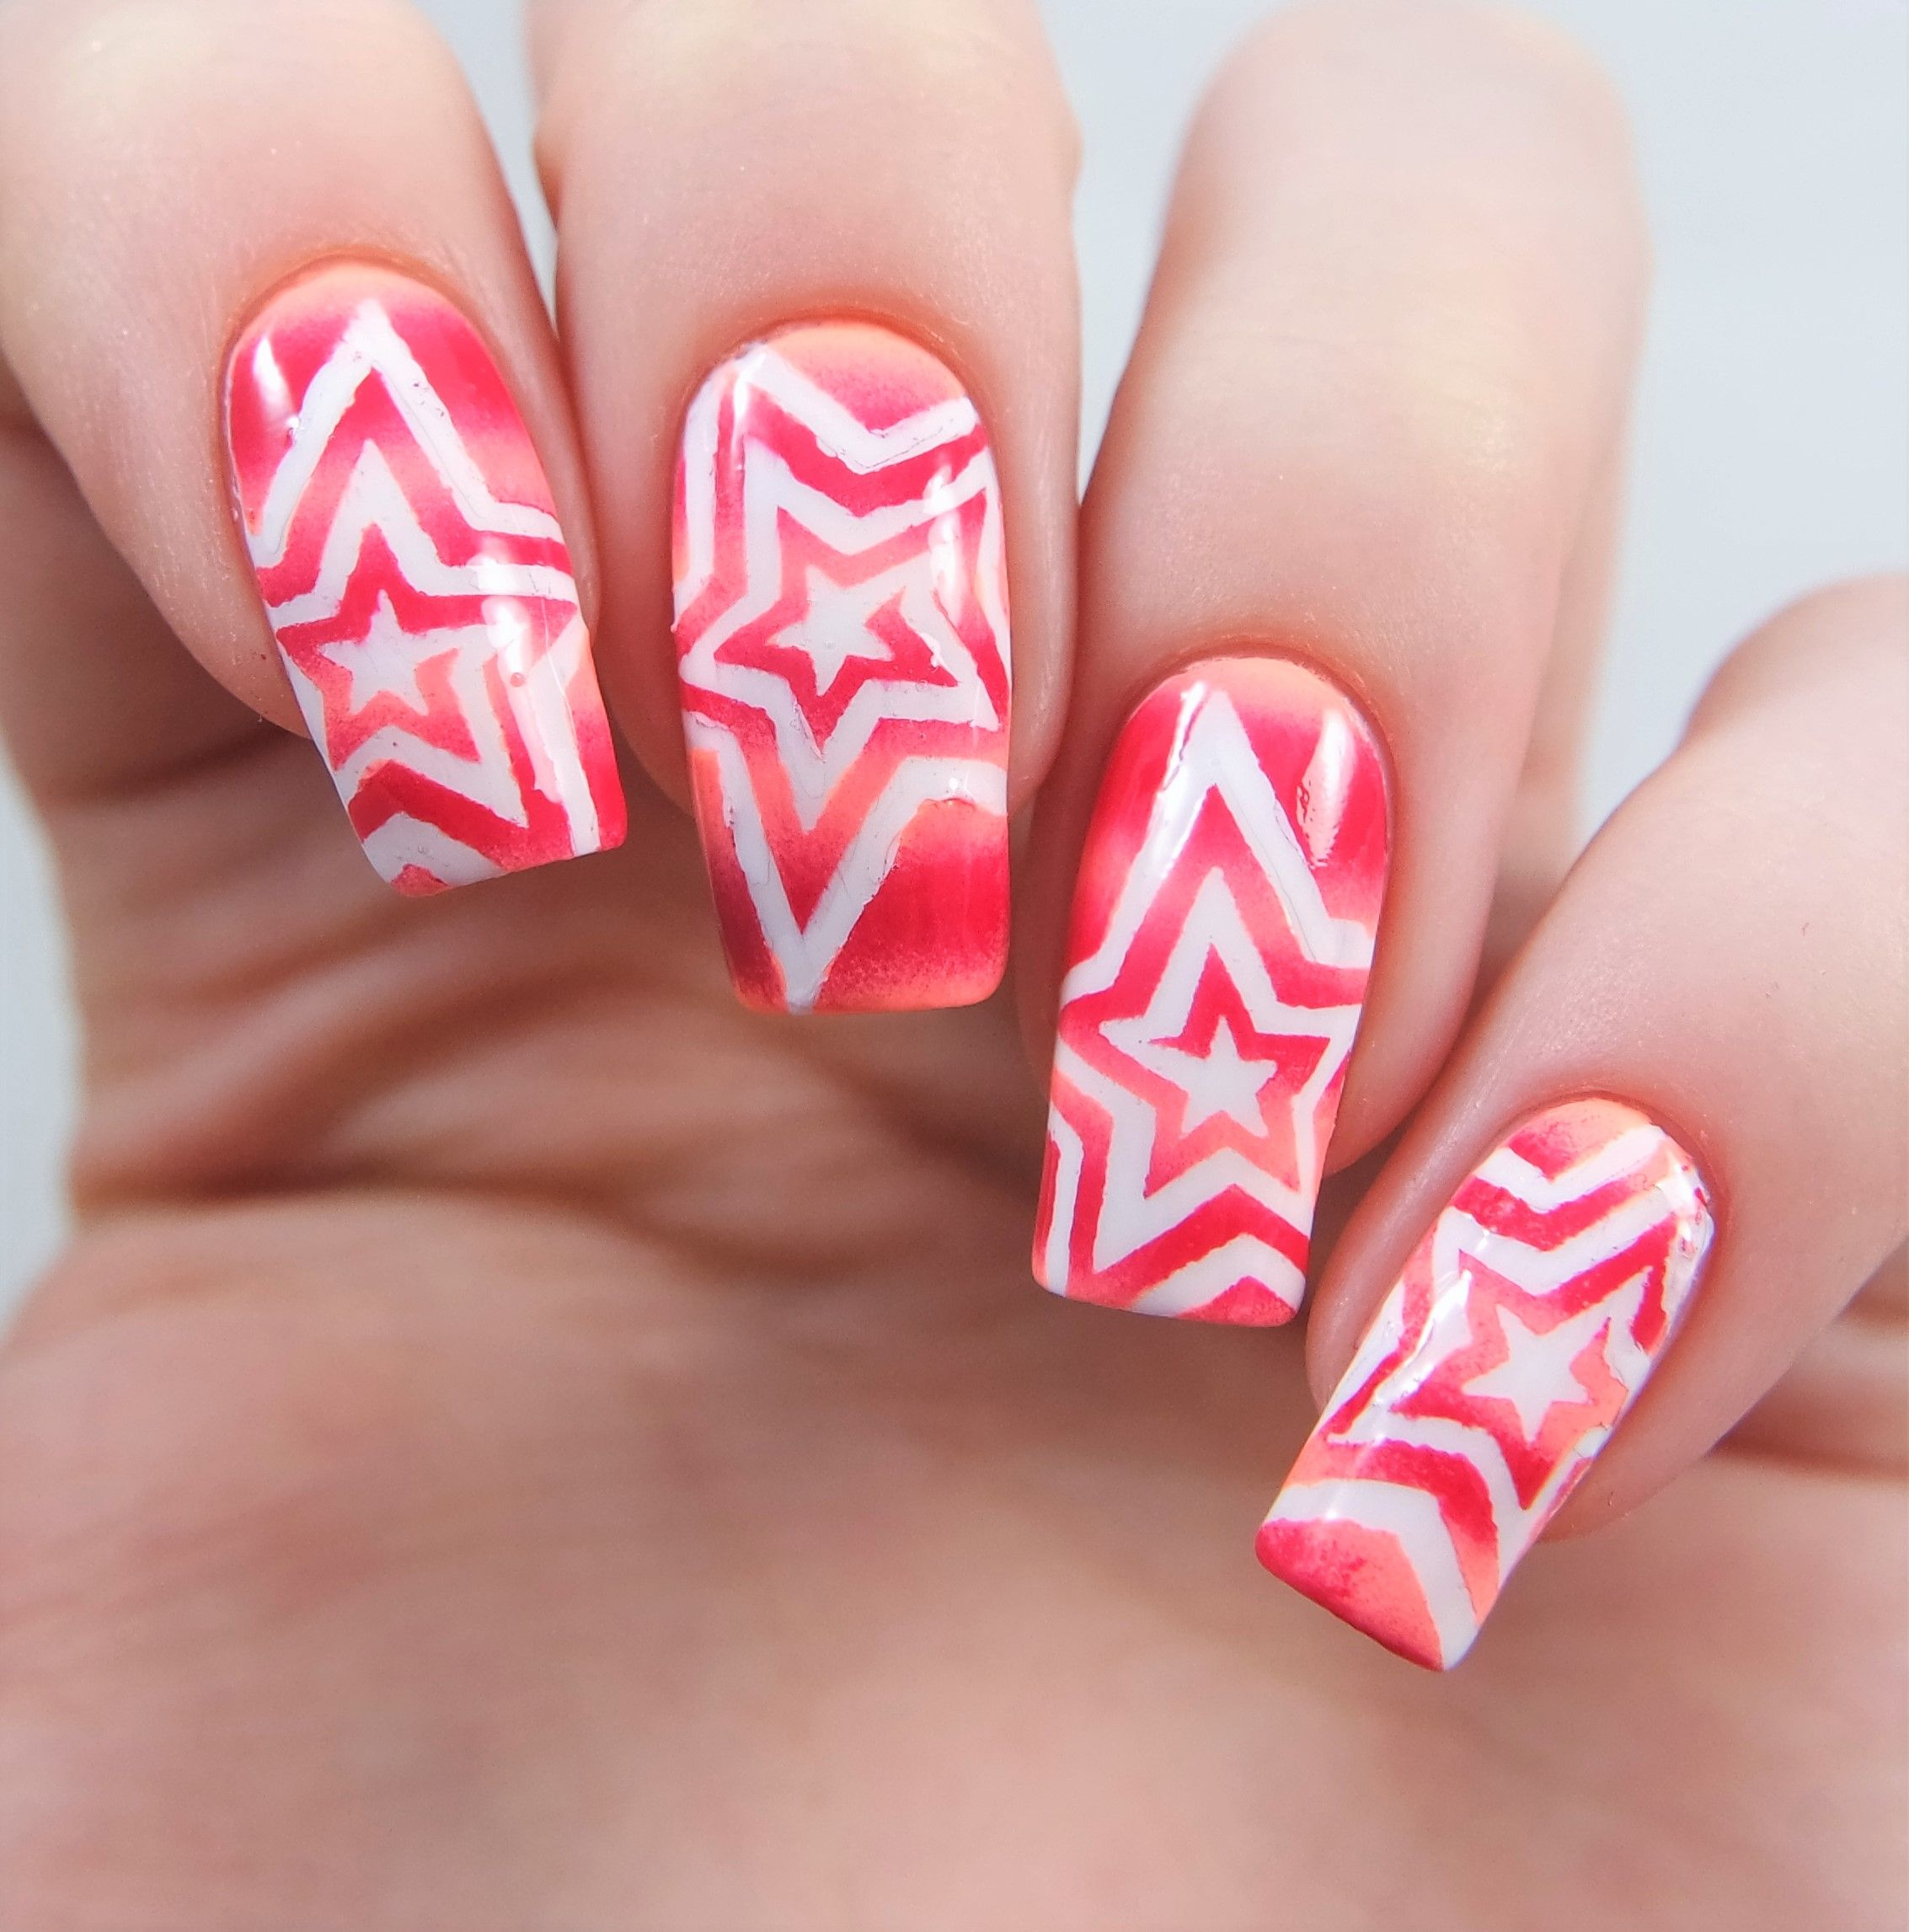 Star Swirl Nail Vinyls Manicure Ombre And Crazy Nail Art